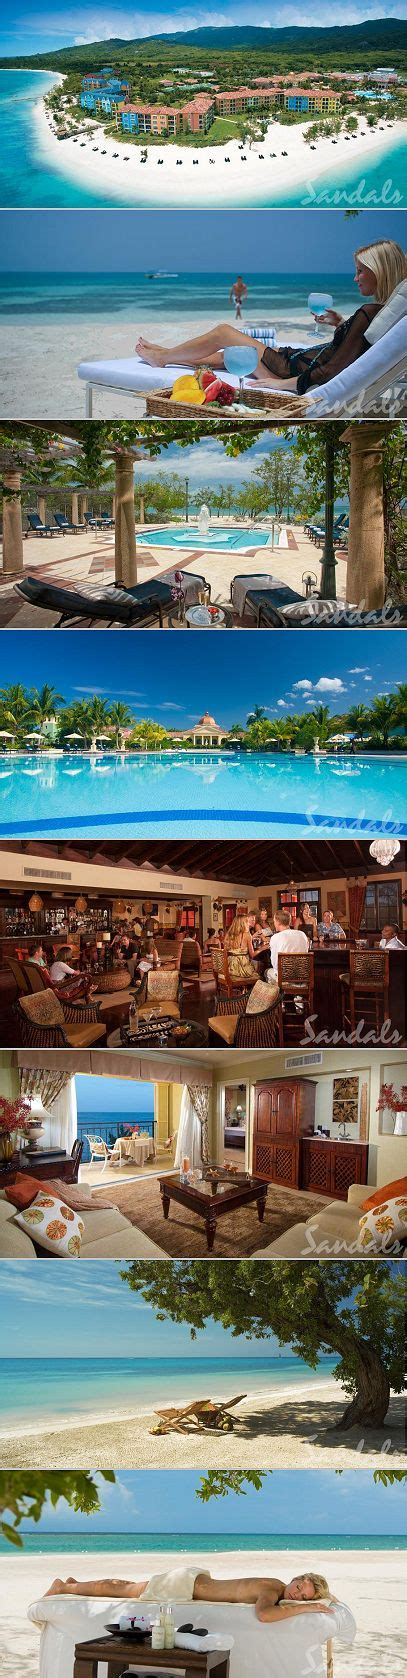 sandals jamaica all inclusive resorts the top caribbean all inclusive resorts for honeymoons